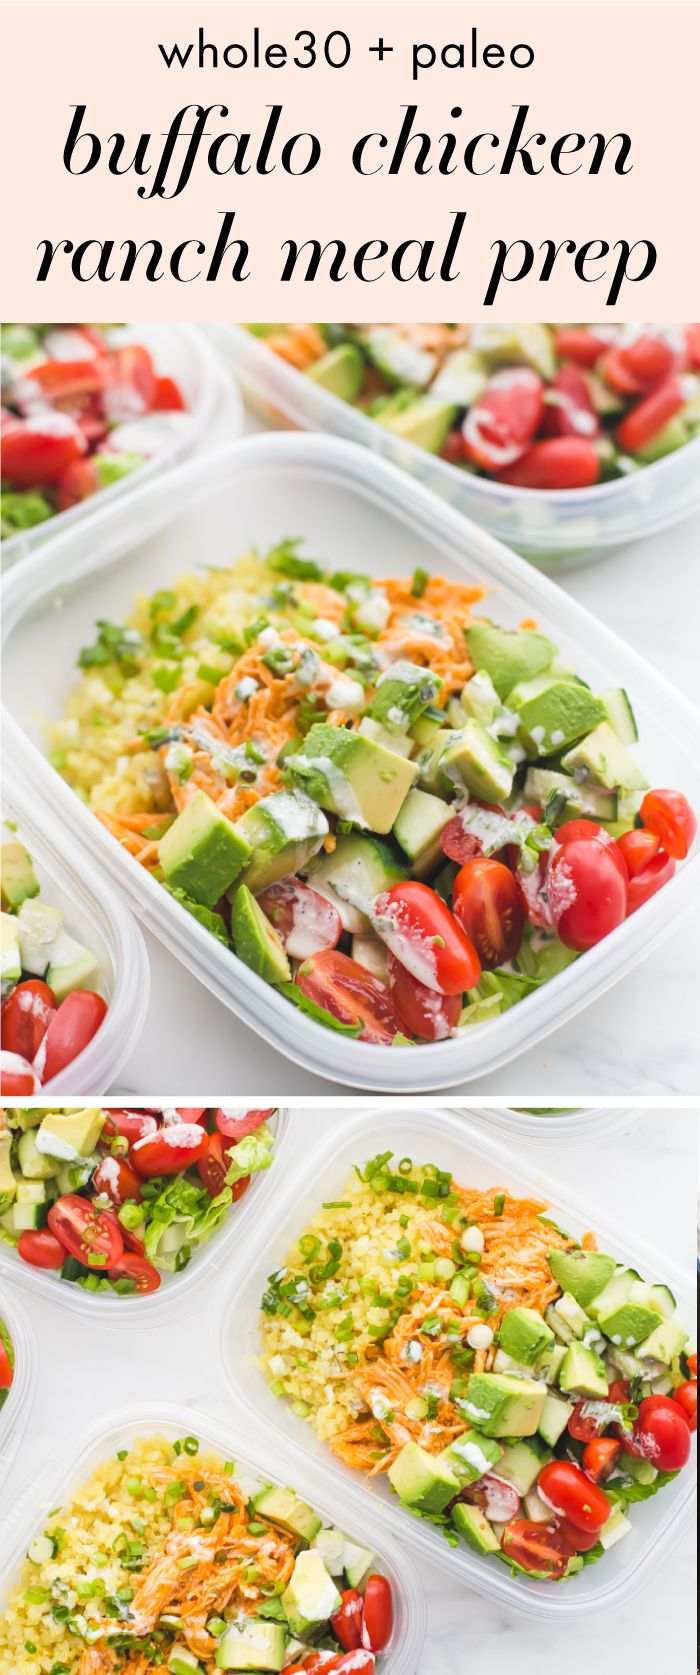 This Whole30 buffalo chicken ranch meal prep is Whole30 meal prep perfection! Totally loaded with flavor, protein, healthy fats, and fiber, this Whole30 meal prep is the best way to go into lunch swinging. With cauliflower rice and homemade ranch dressing